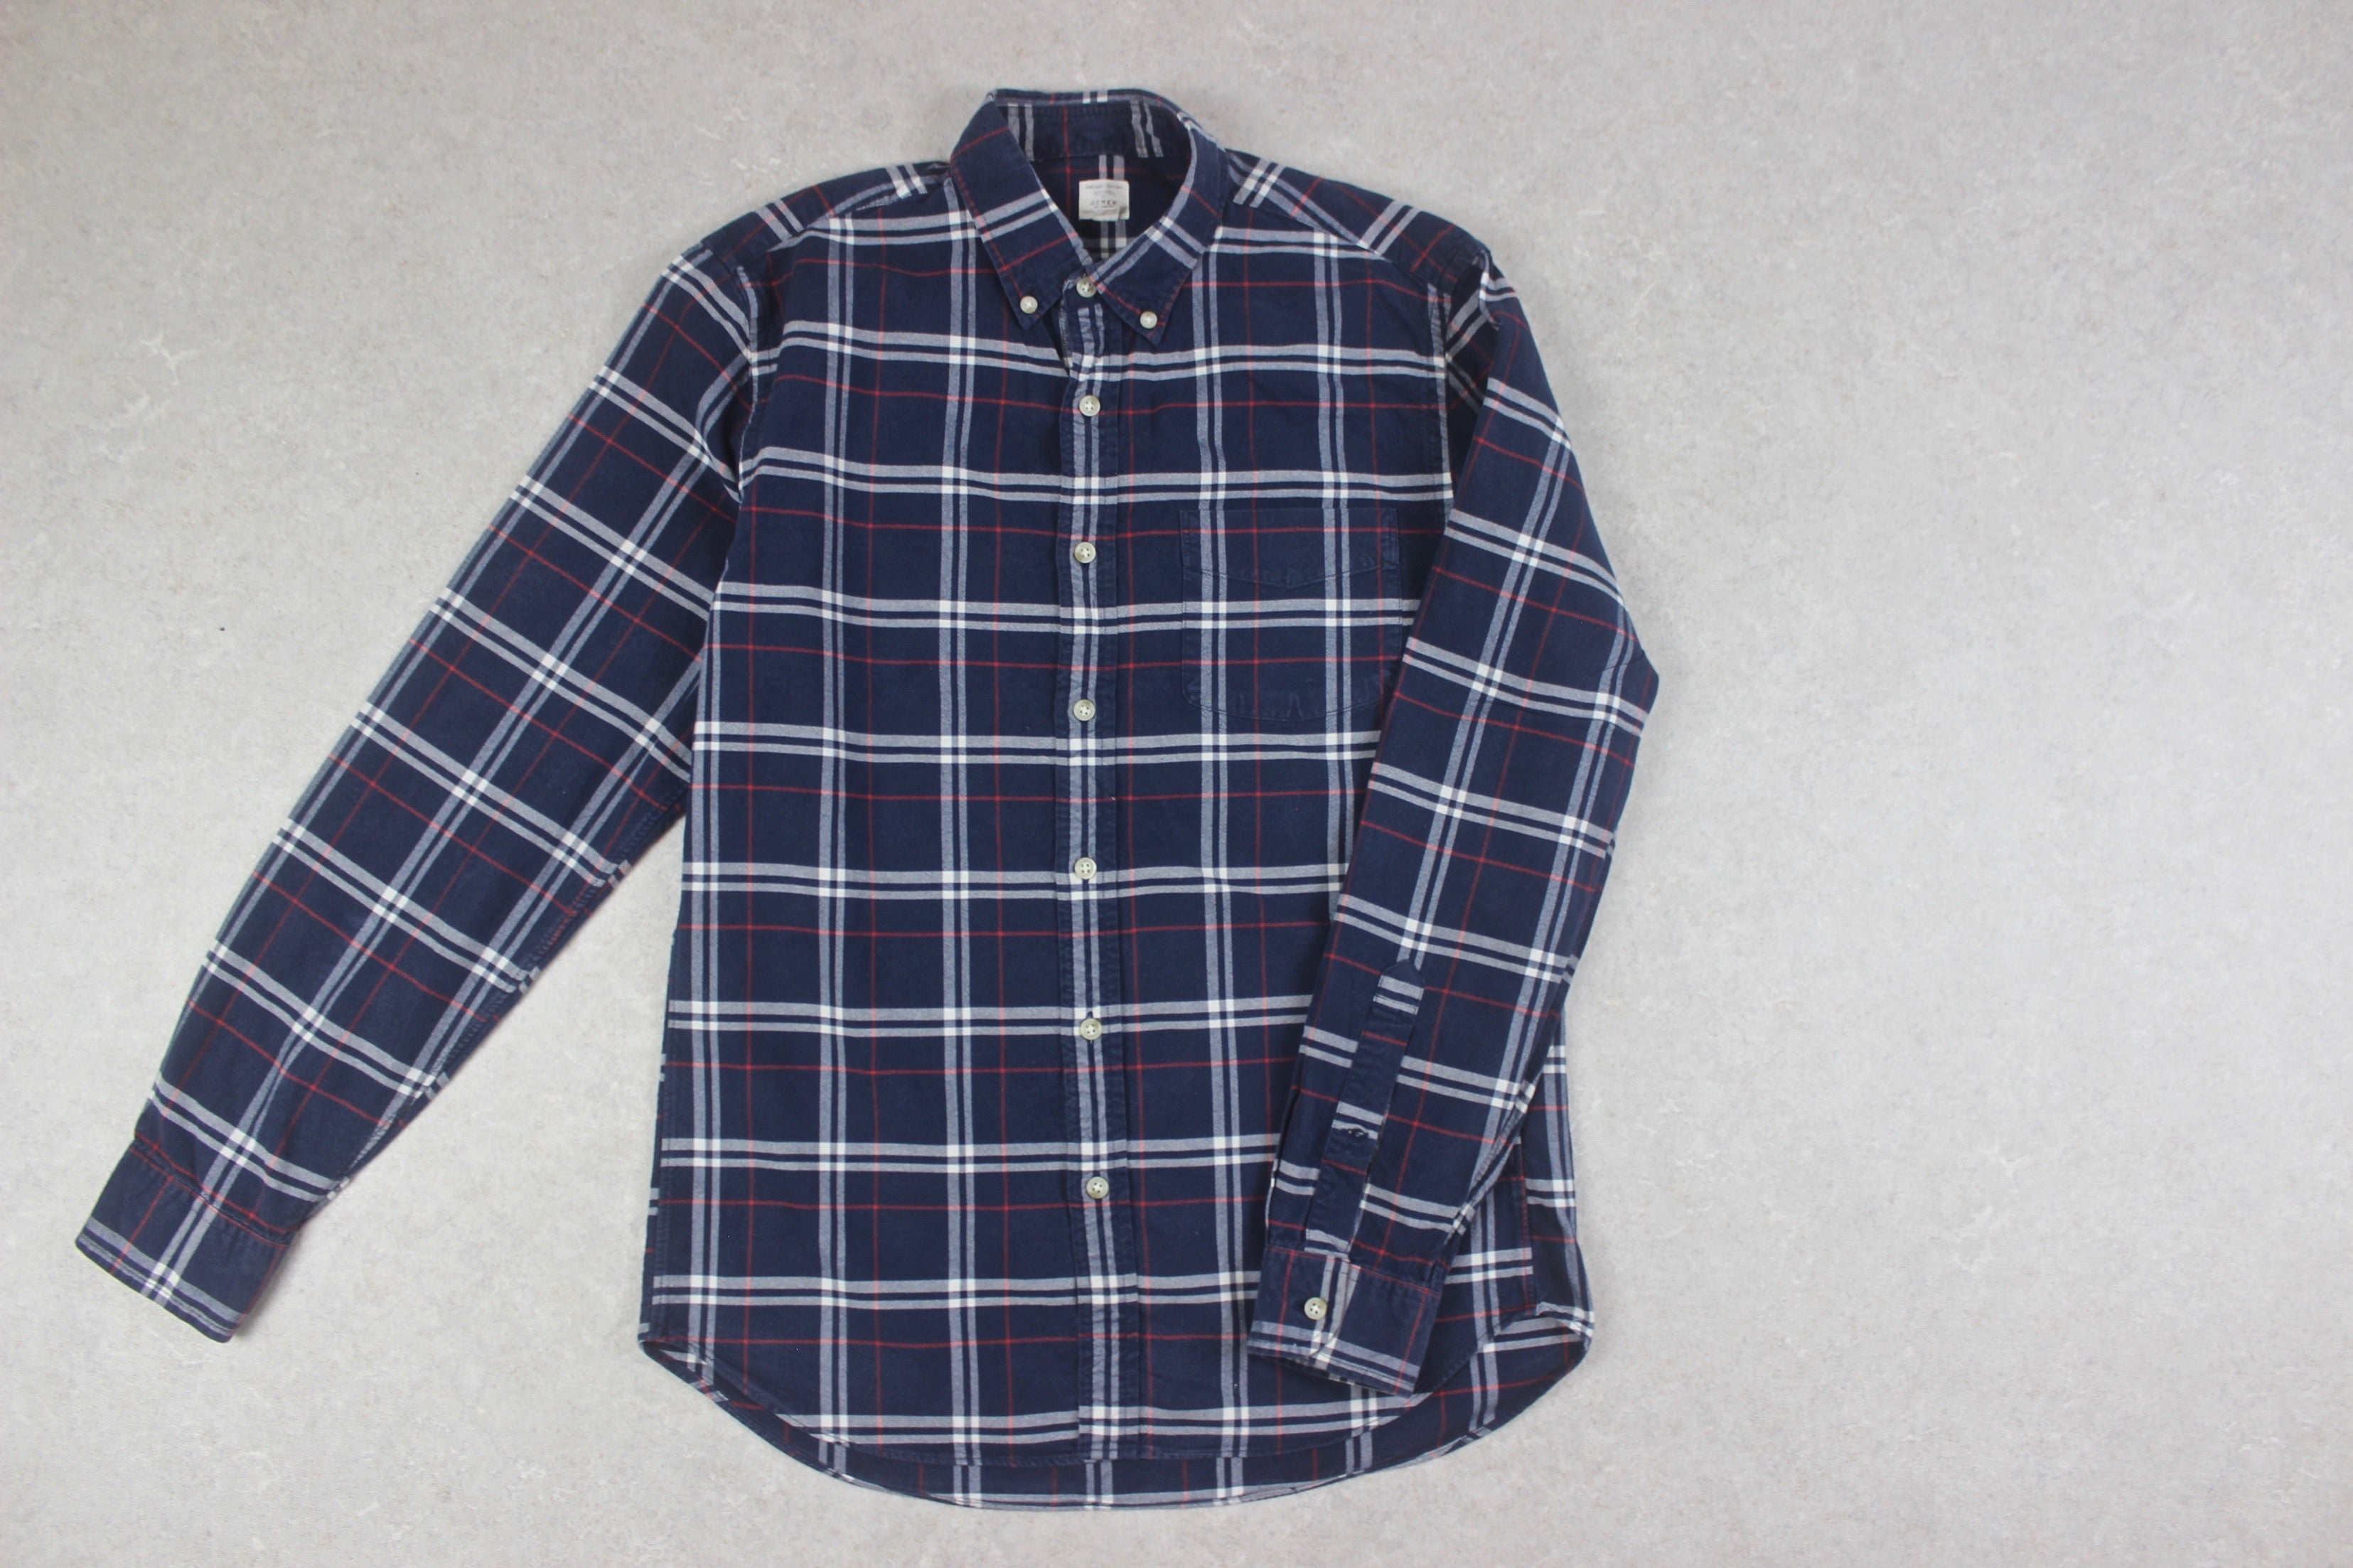 J Crew - Oxford Shirt - Blue/White Check - Small